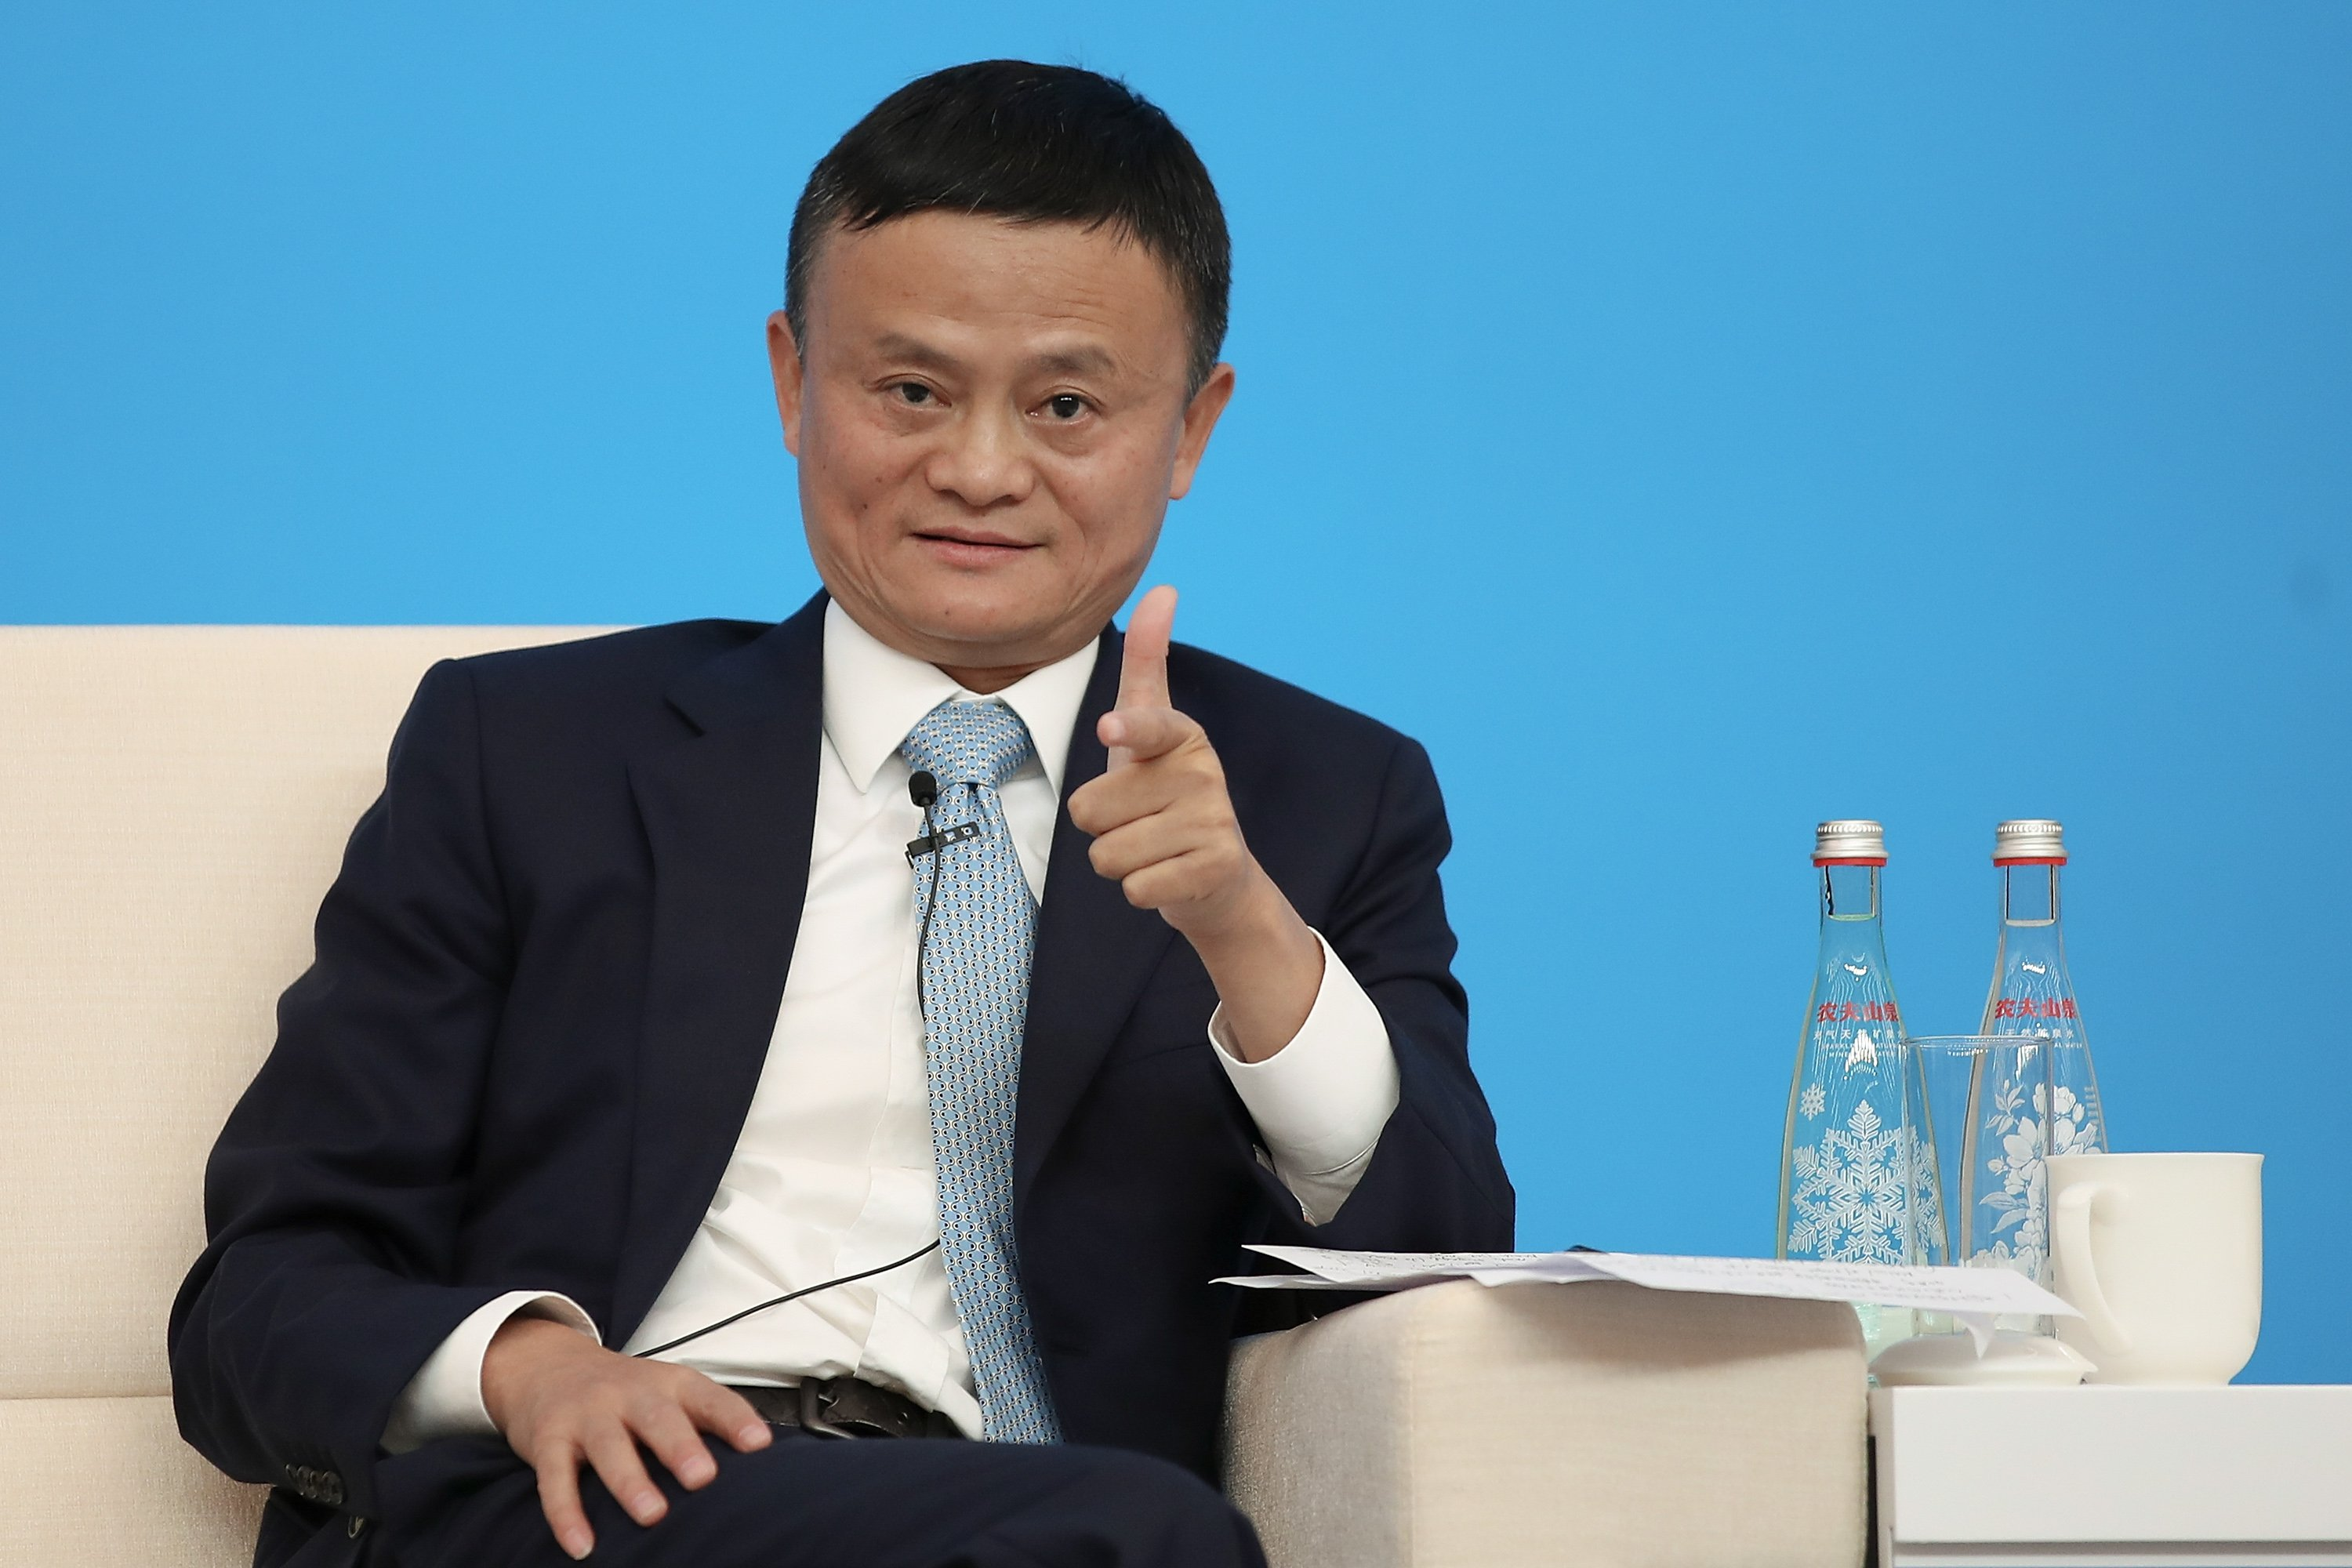 Jack Ma at the National Exhibition and Convention Center in Shanghai, China | Photo: Getty Images